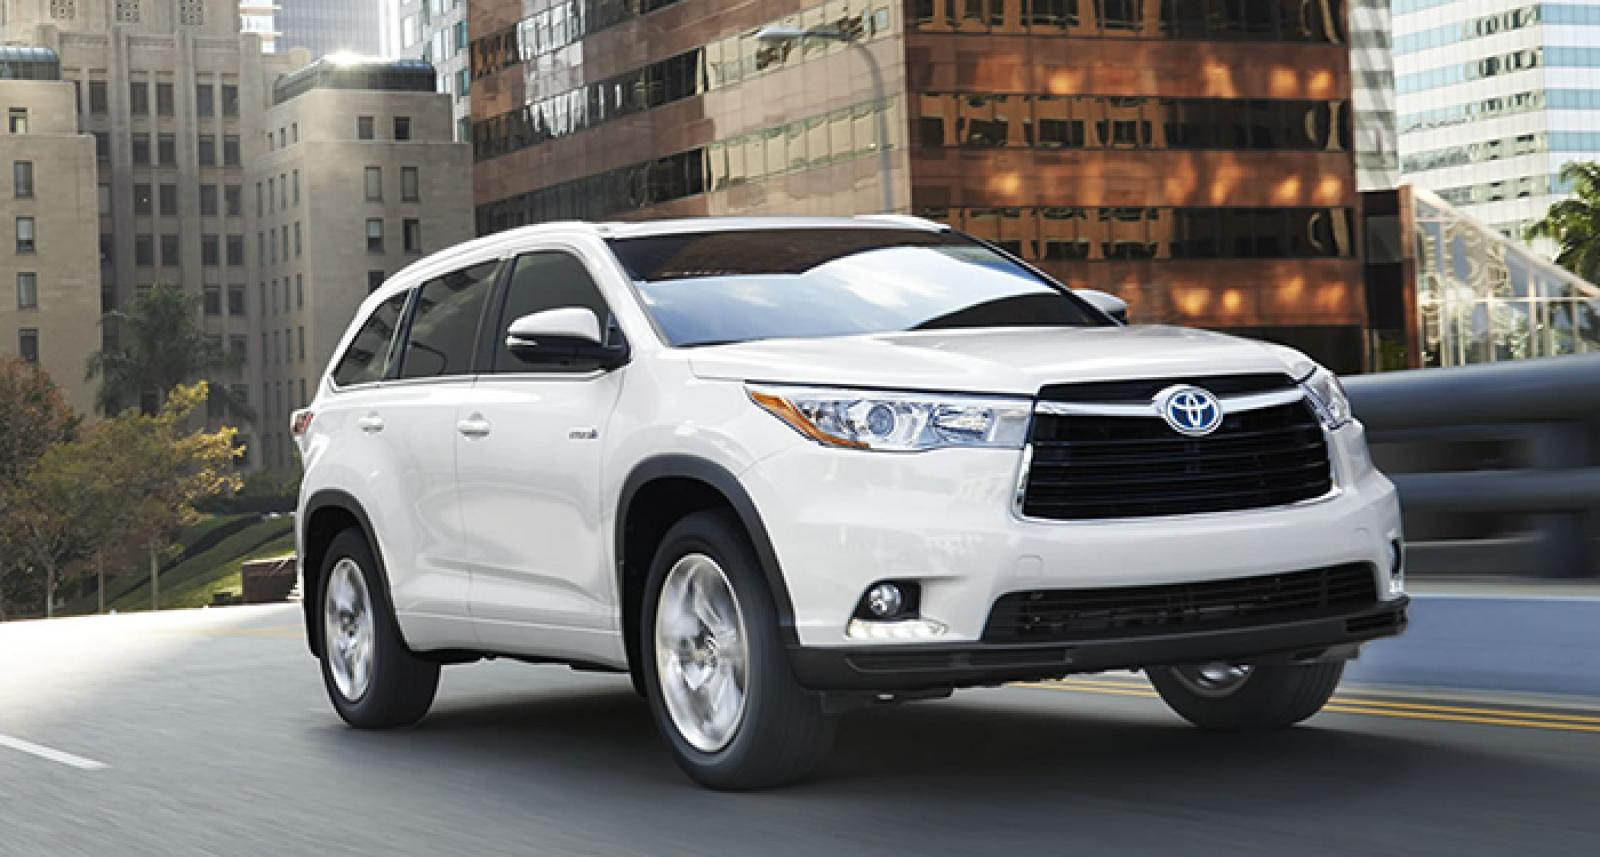 msrp platinum review salinas californian car highlander toyota story low suv news plat ltd crossover limited